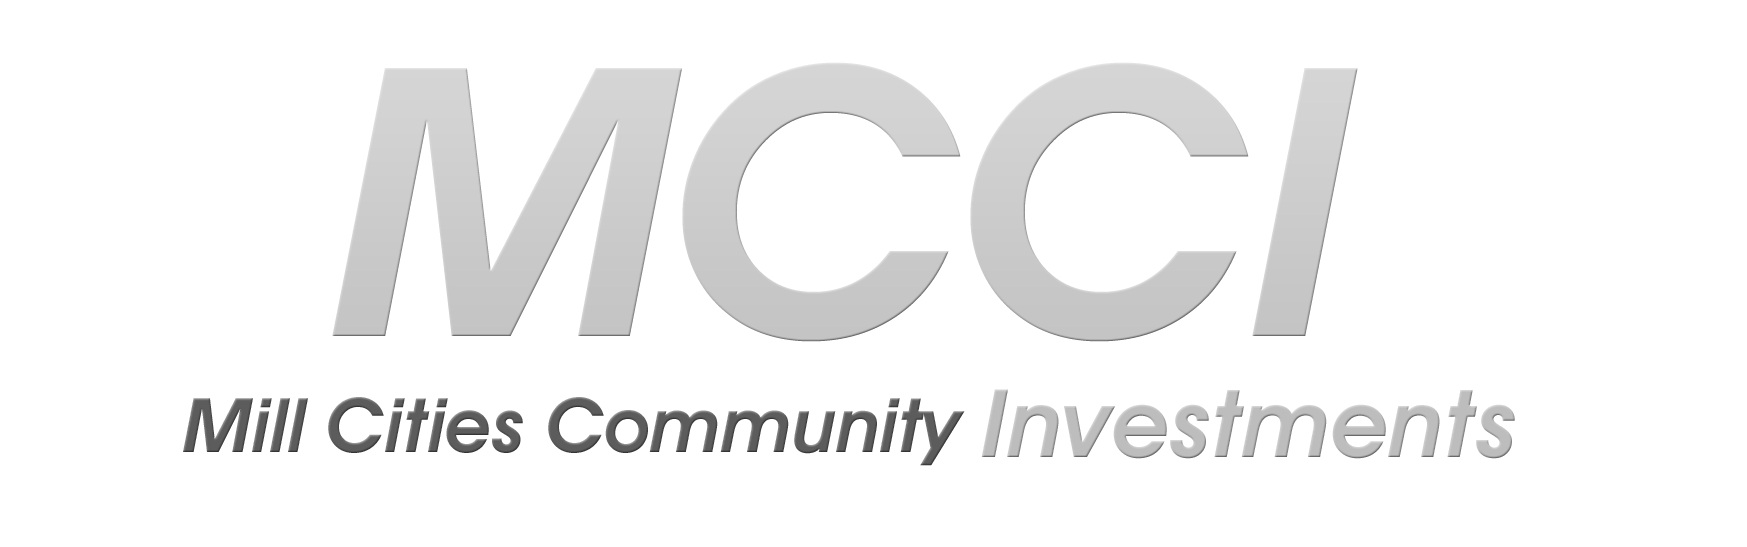 MCCI logo from google.png